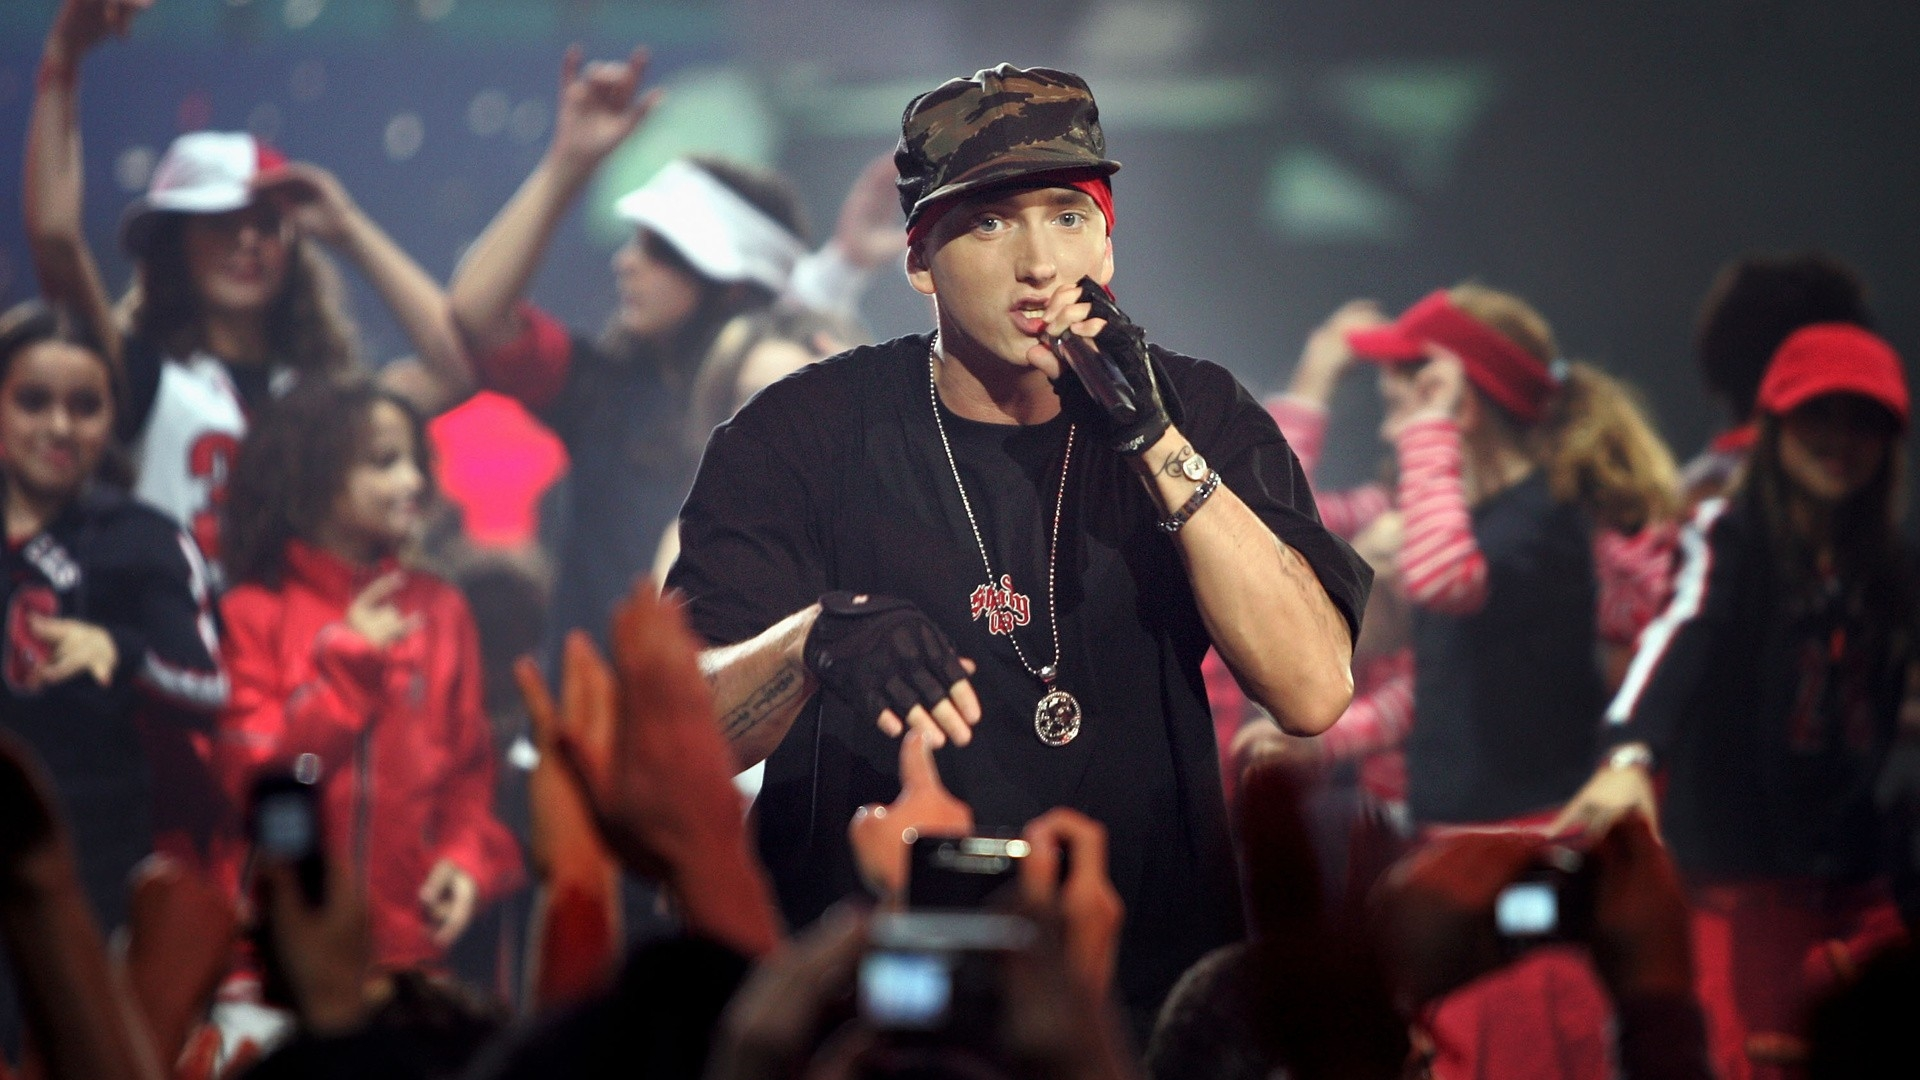 Eminem Wallpapers HD rapping